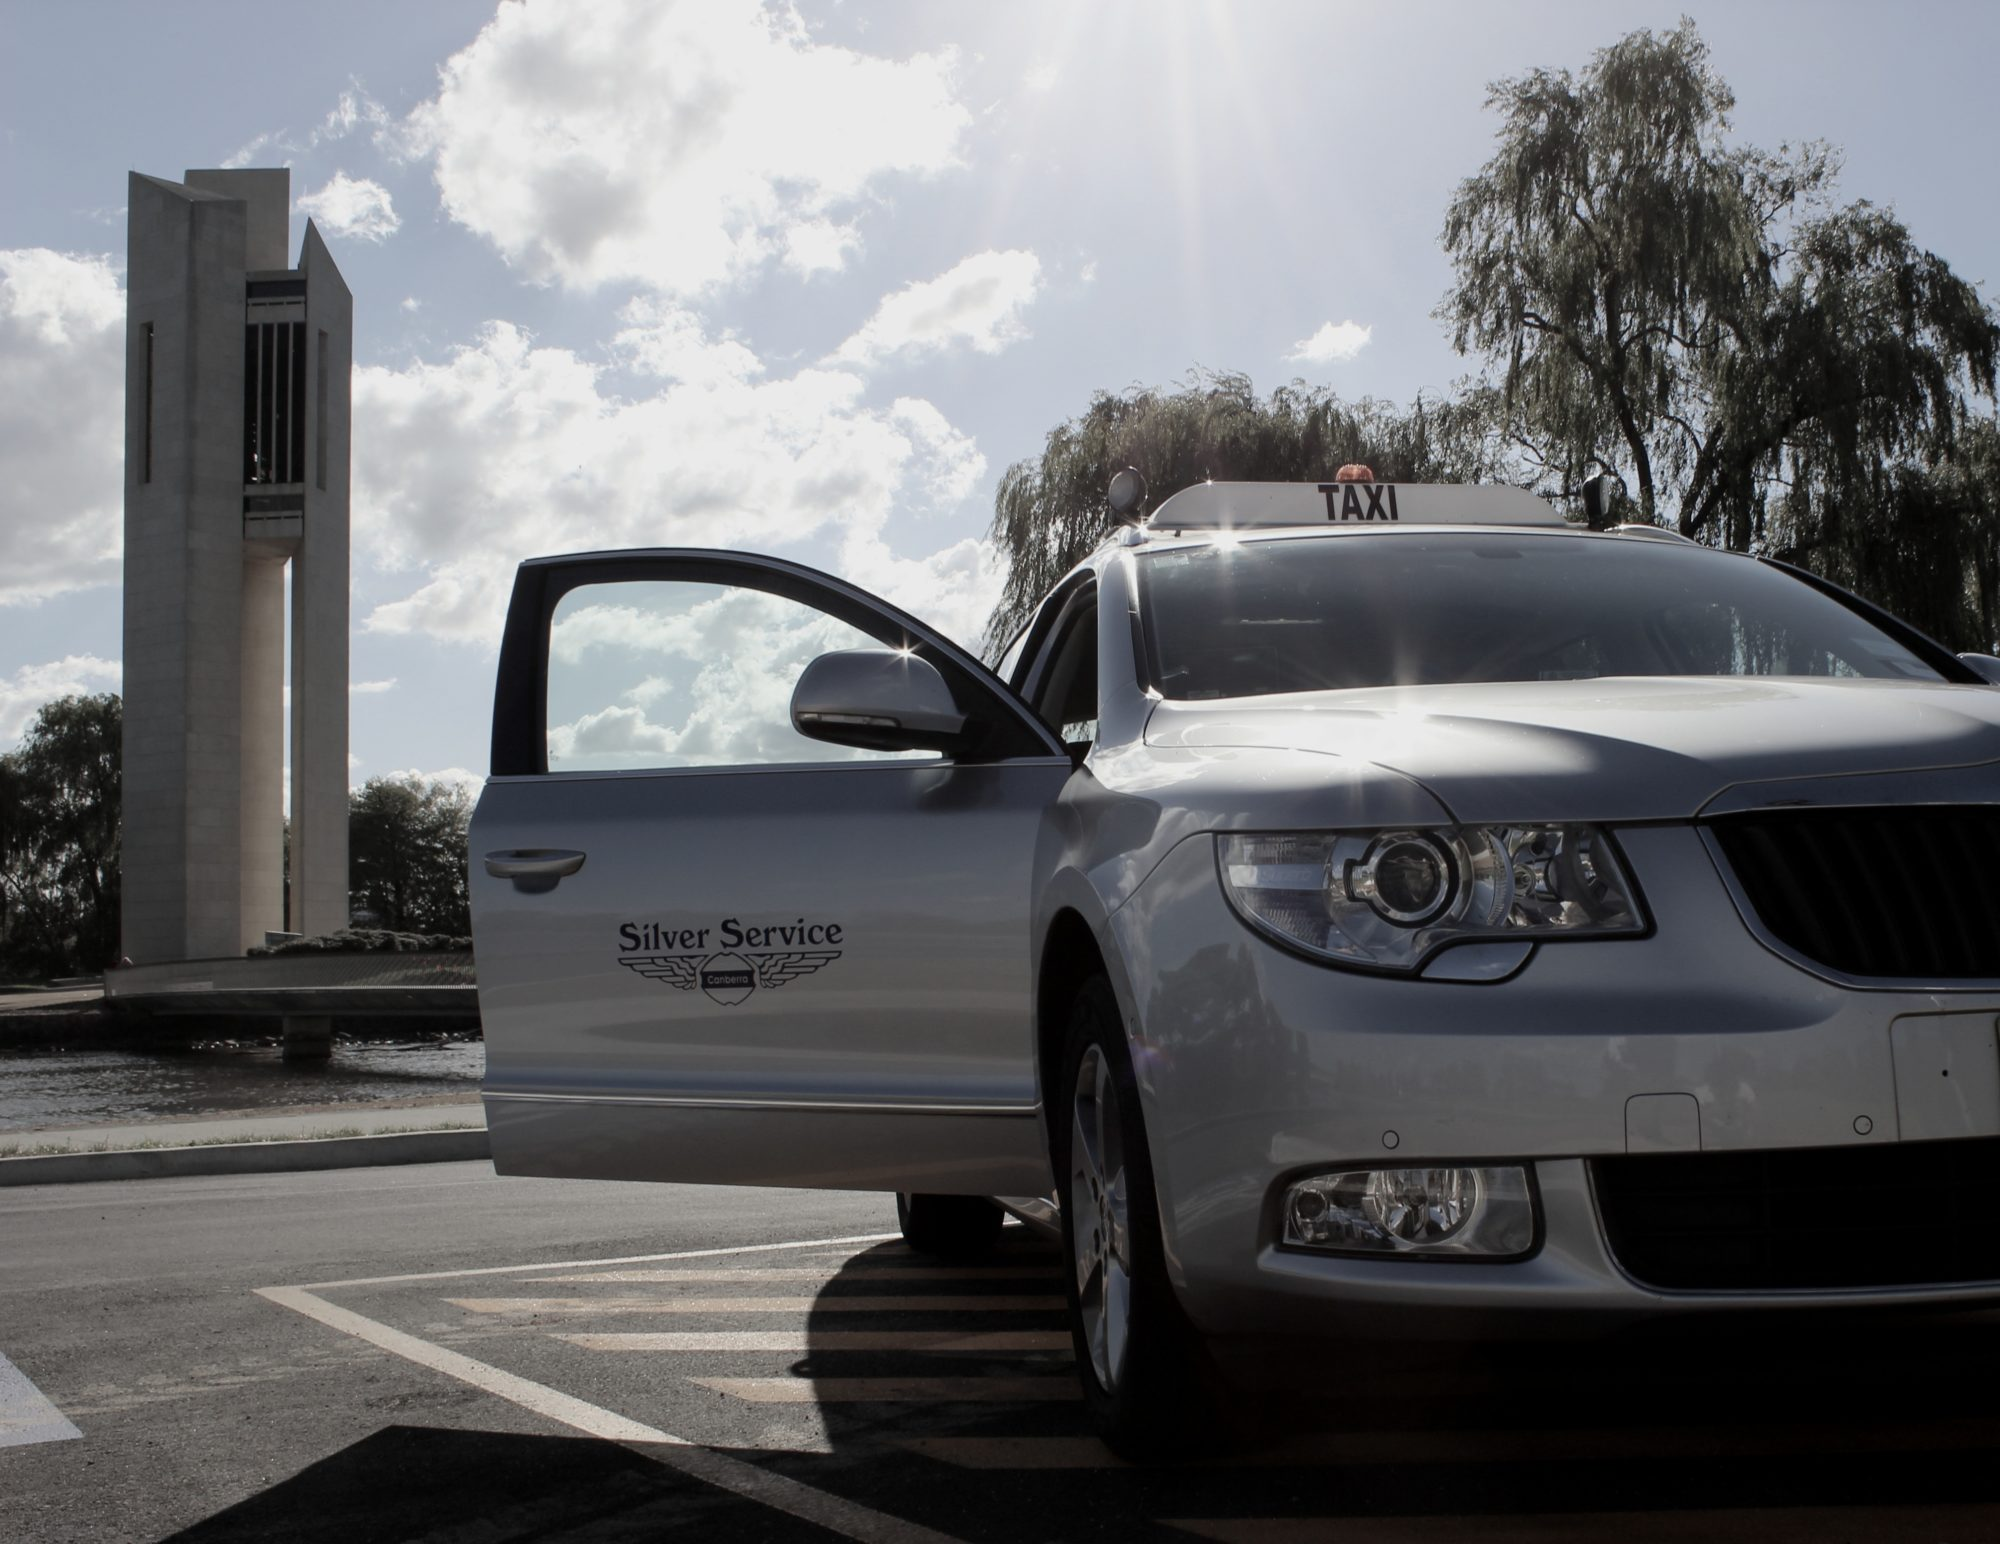 Silver Service Canberra Taxis